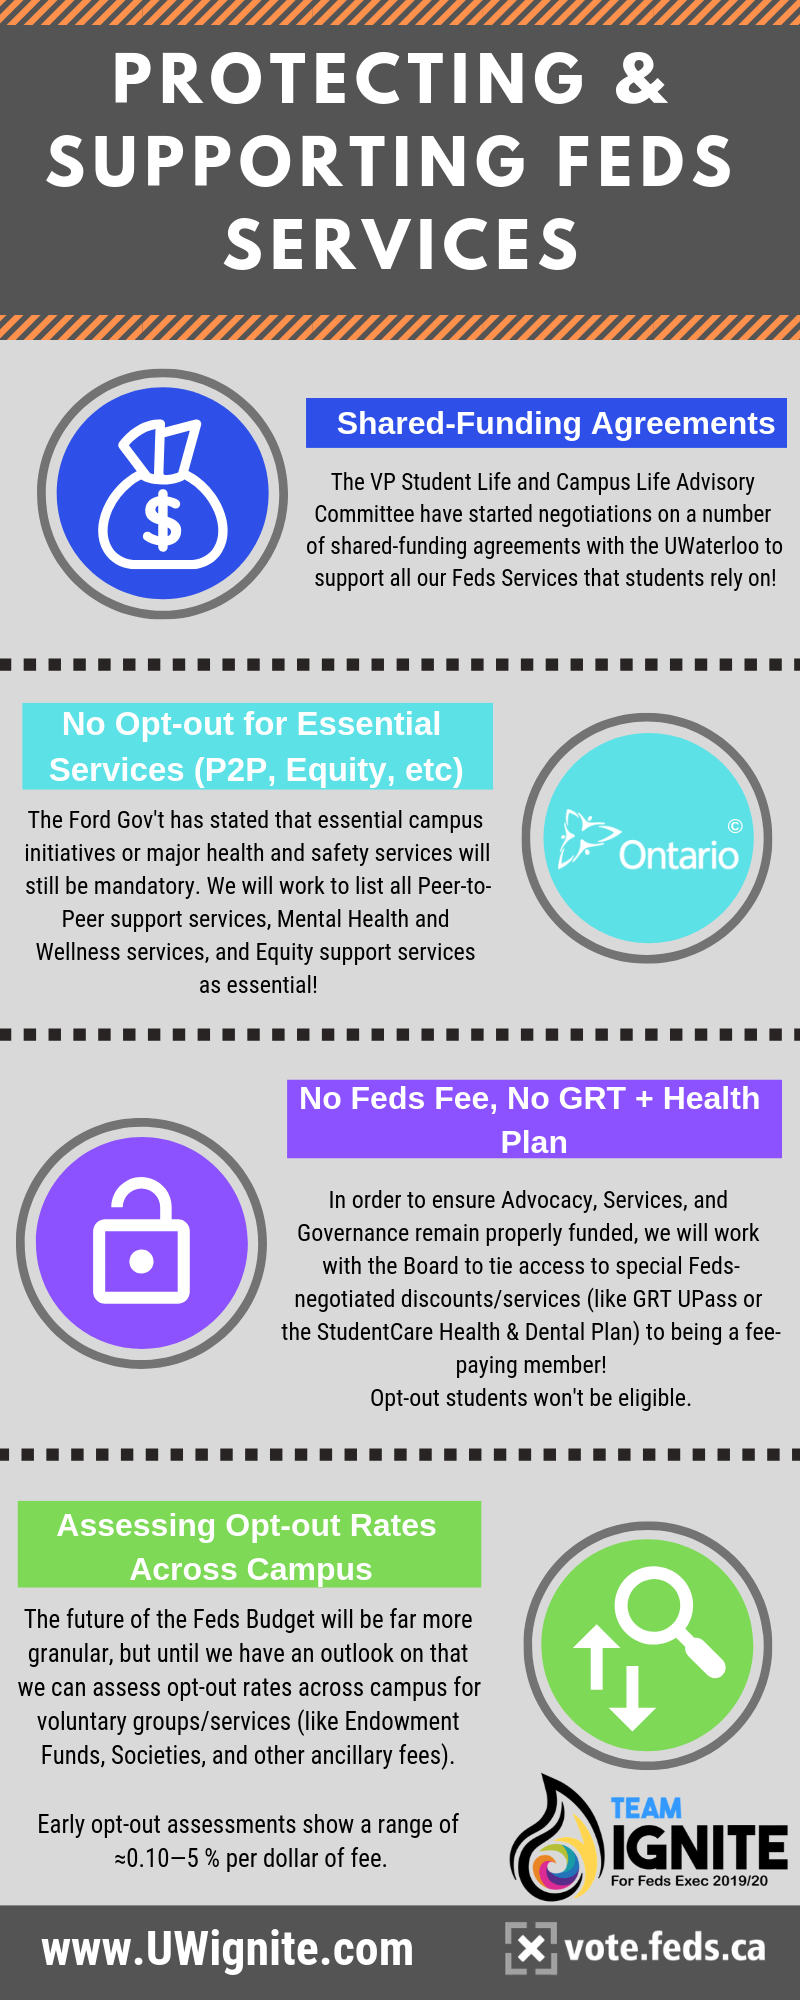 Protecting & Supporting Feds Services (2).png